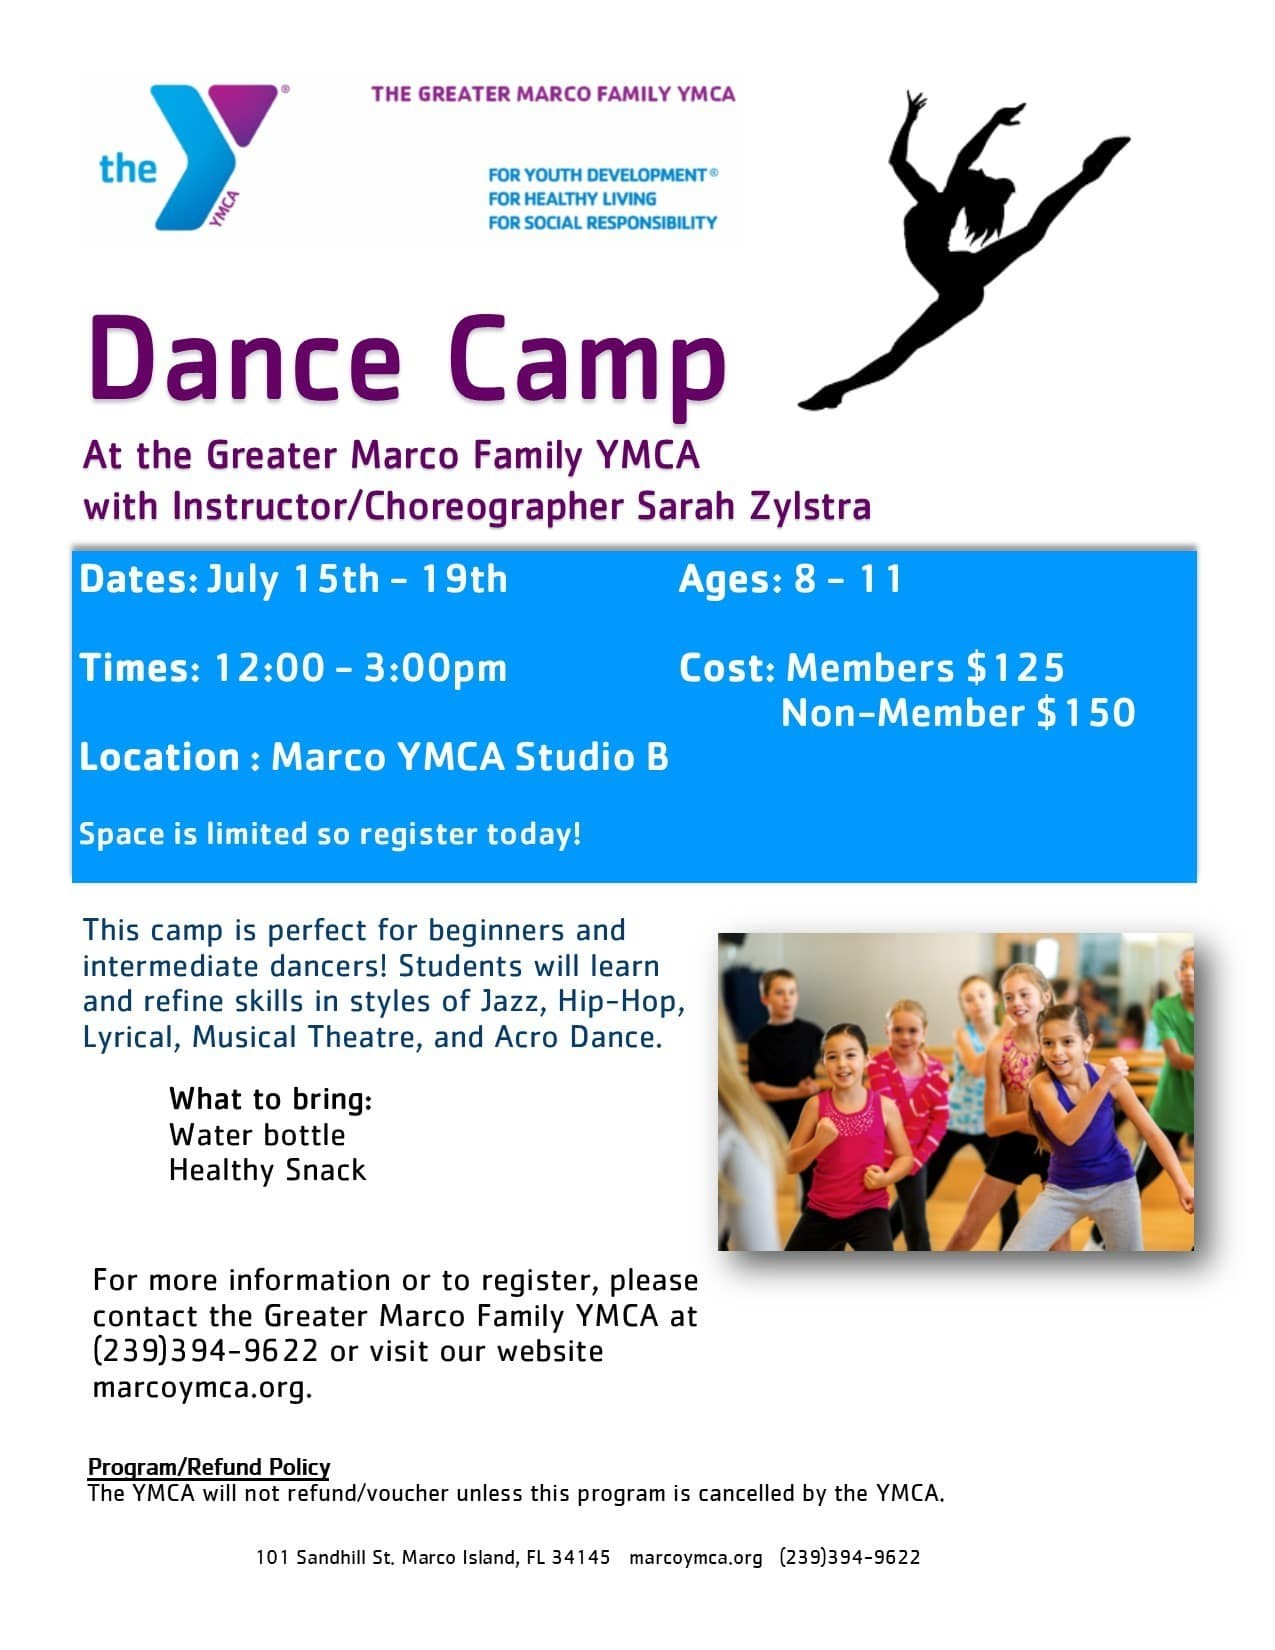 Marco YMCA Dance Camp